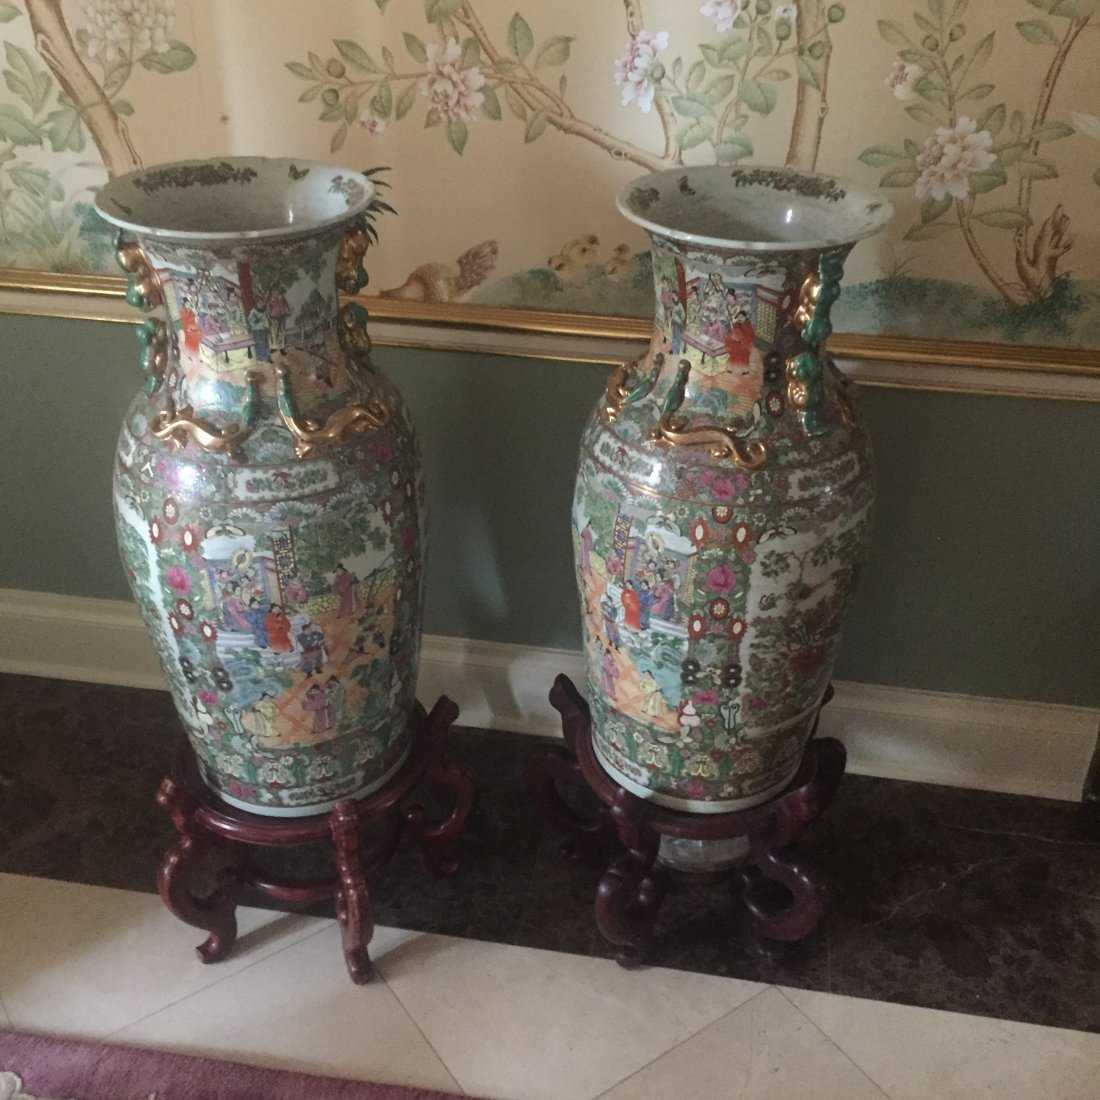 Tall Asian-style floor vase on large vases, asian paintings, oriental style vases, asian bamboo, japanese tall vases, tall clay vases, big decorative vases, oversized vases, asian bowls, vintage glass vases, asian clothing, asian clocks, asian floor beds, asian mirrors, asian lamps, oriental porcelain vases,